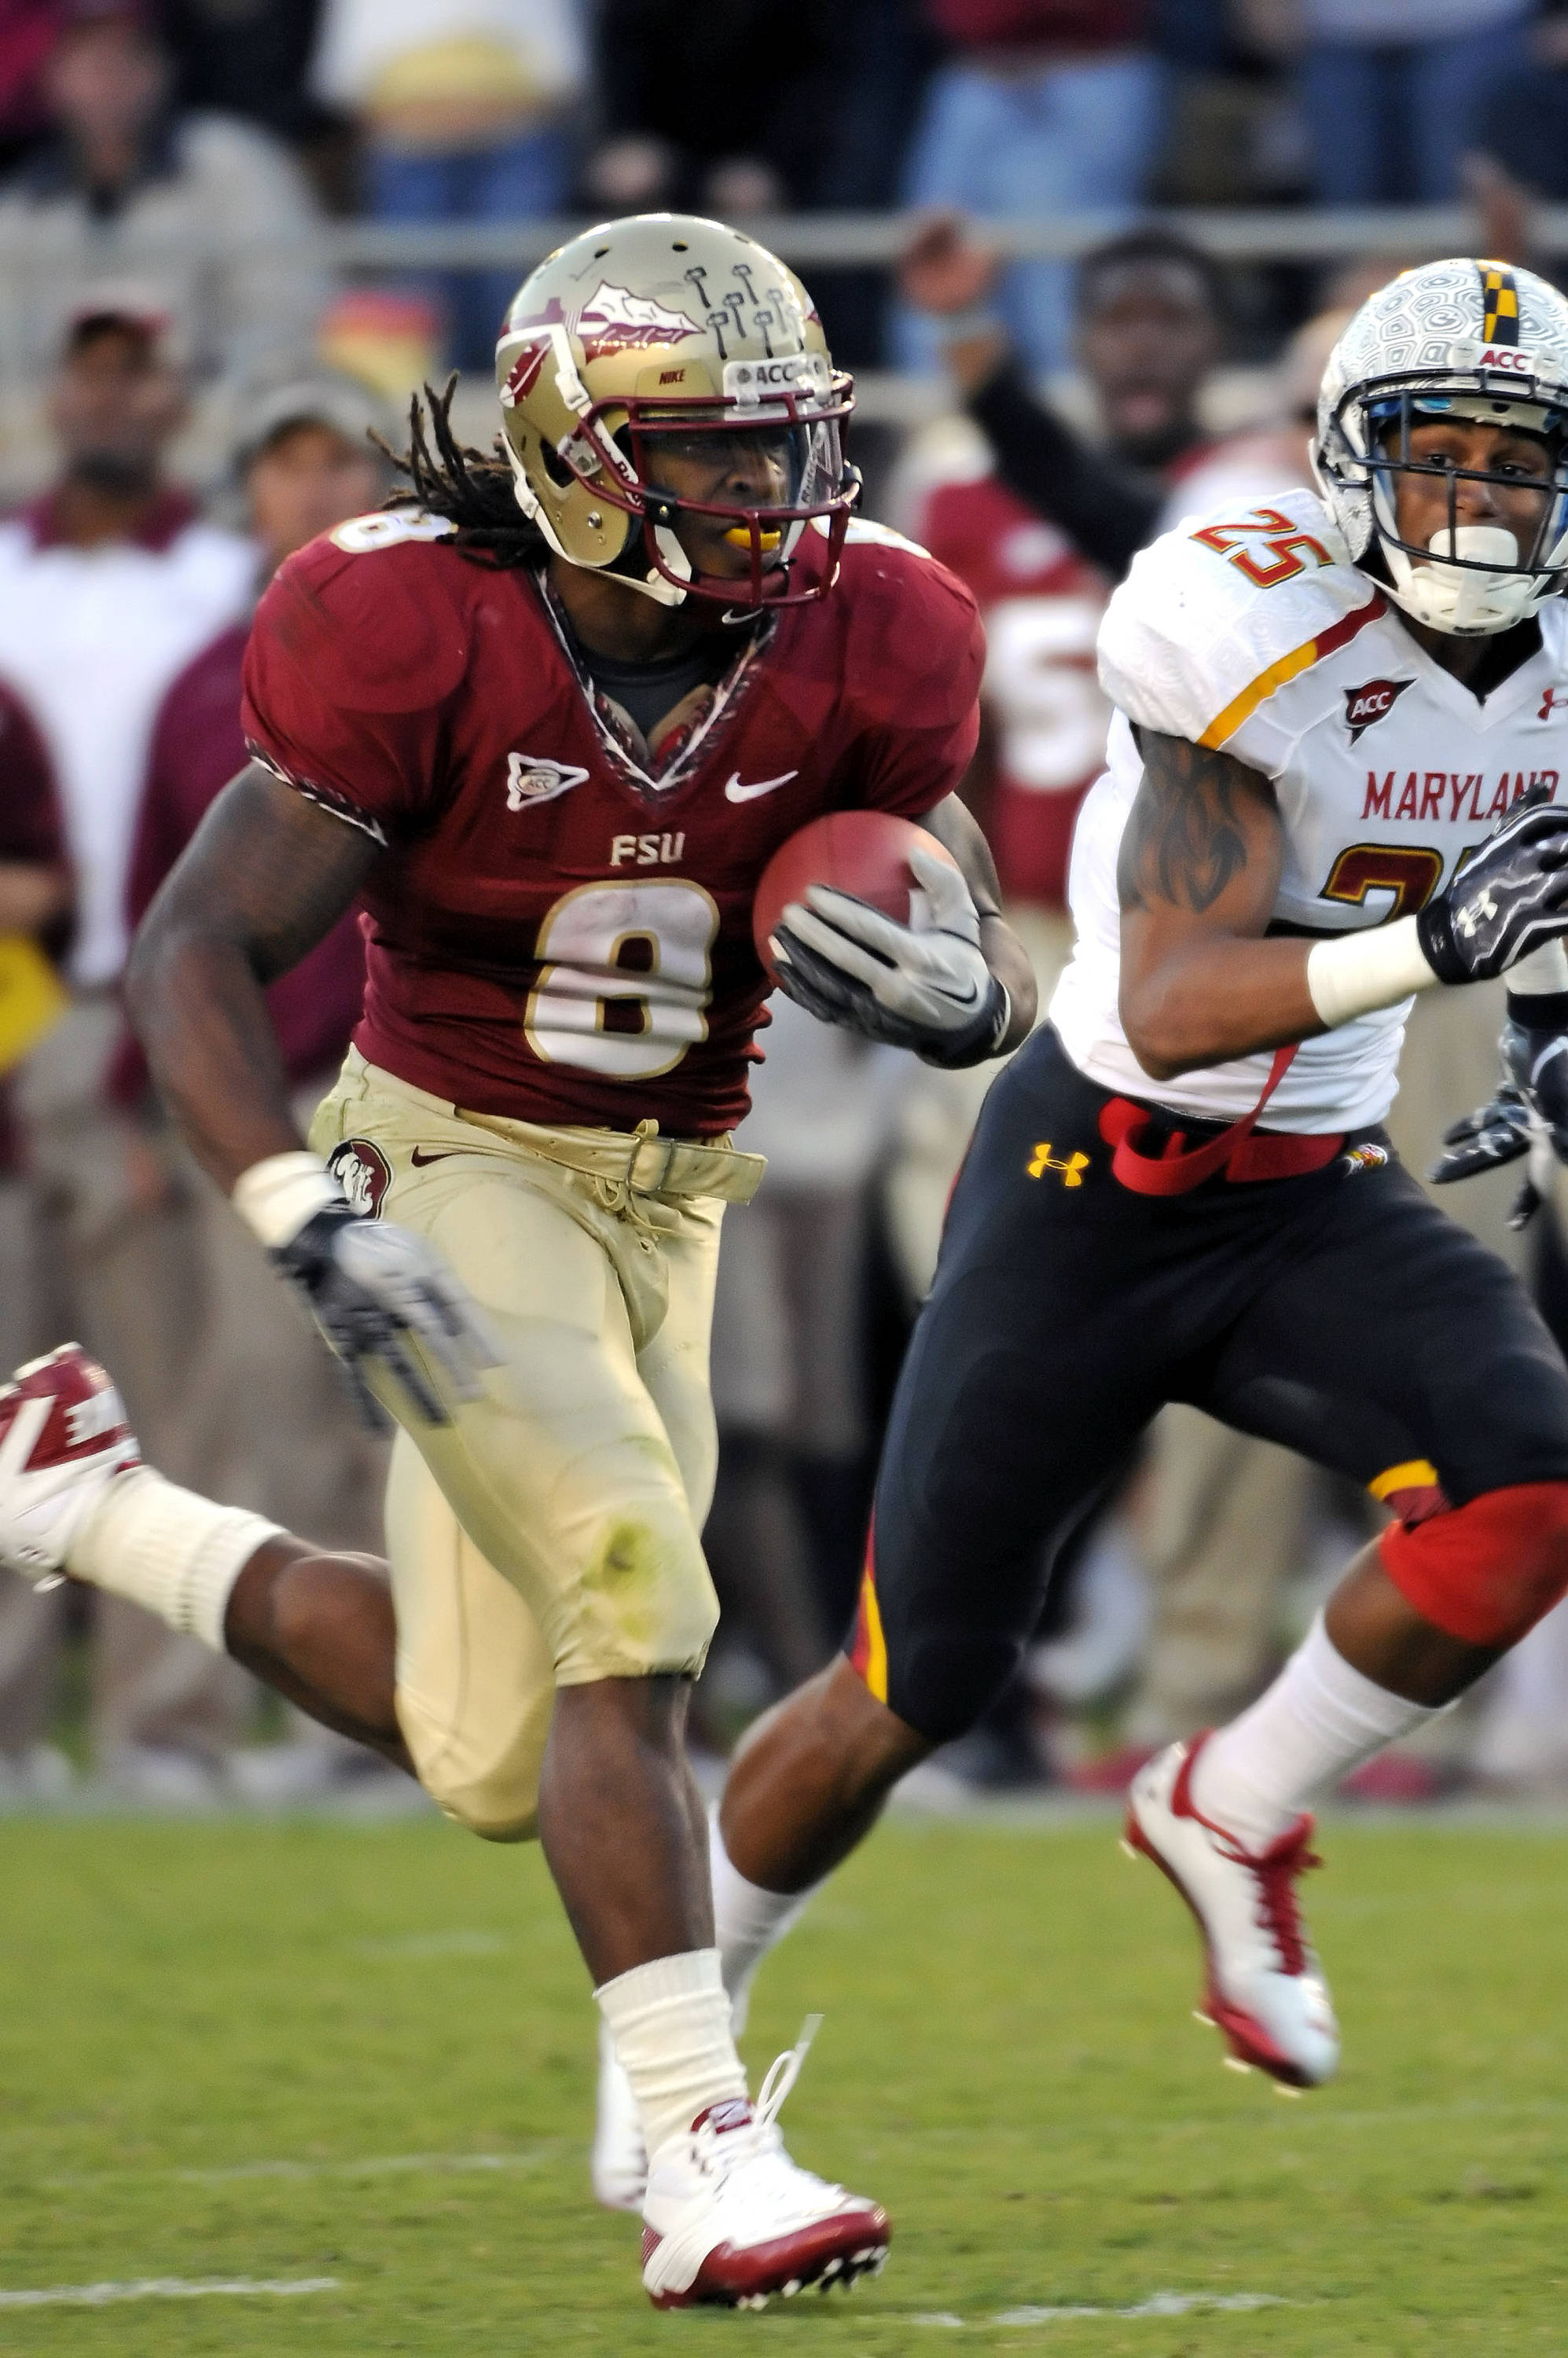 Devonta Freeman (8) had an outstanding freshman season and is seen here running for a touchdown against Maryland.